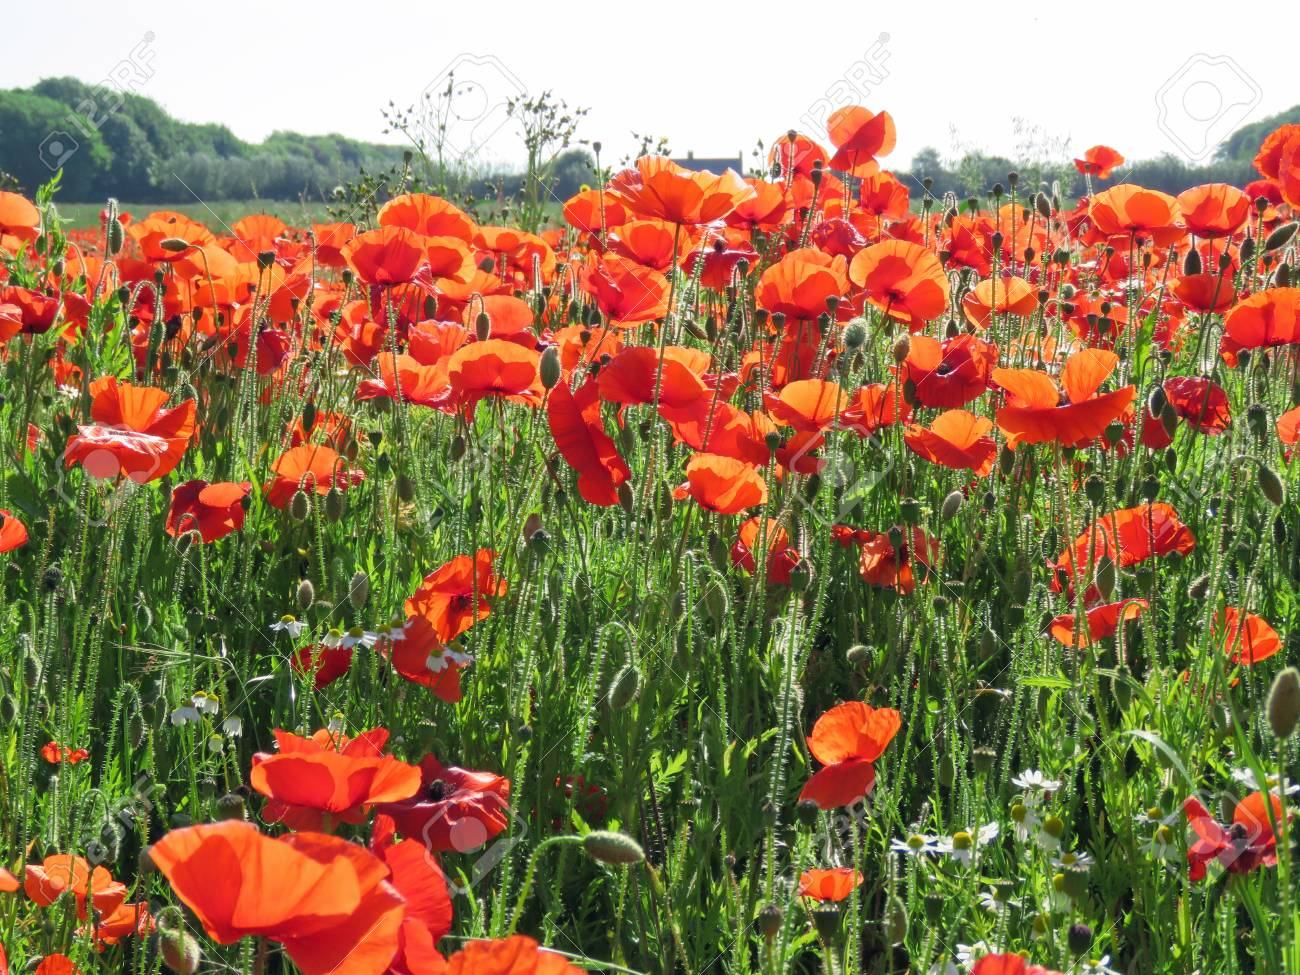 A meadow full of poppies and grasses in rural English countryside Standard-Bild - 81777939